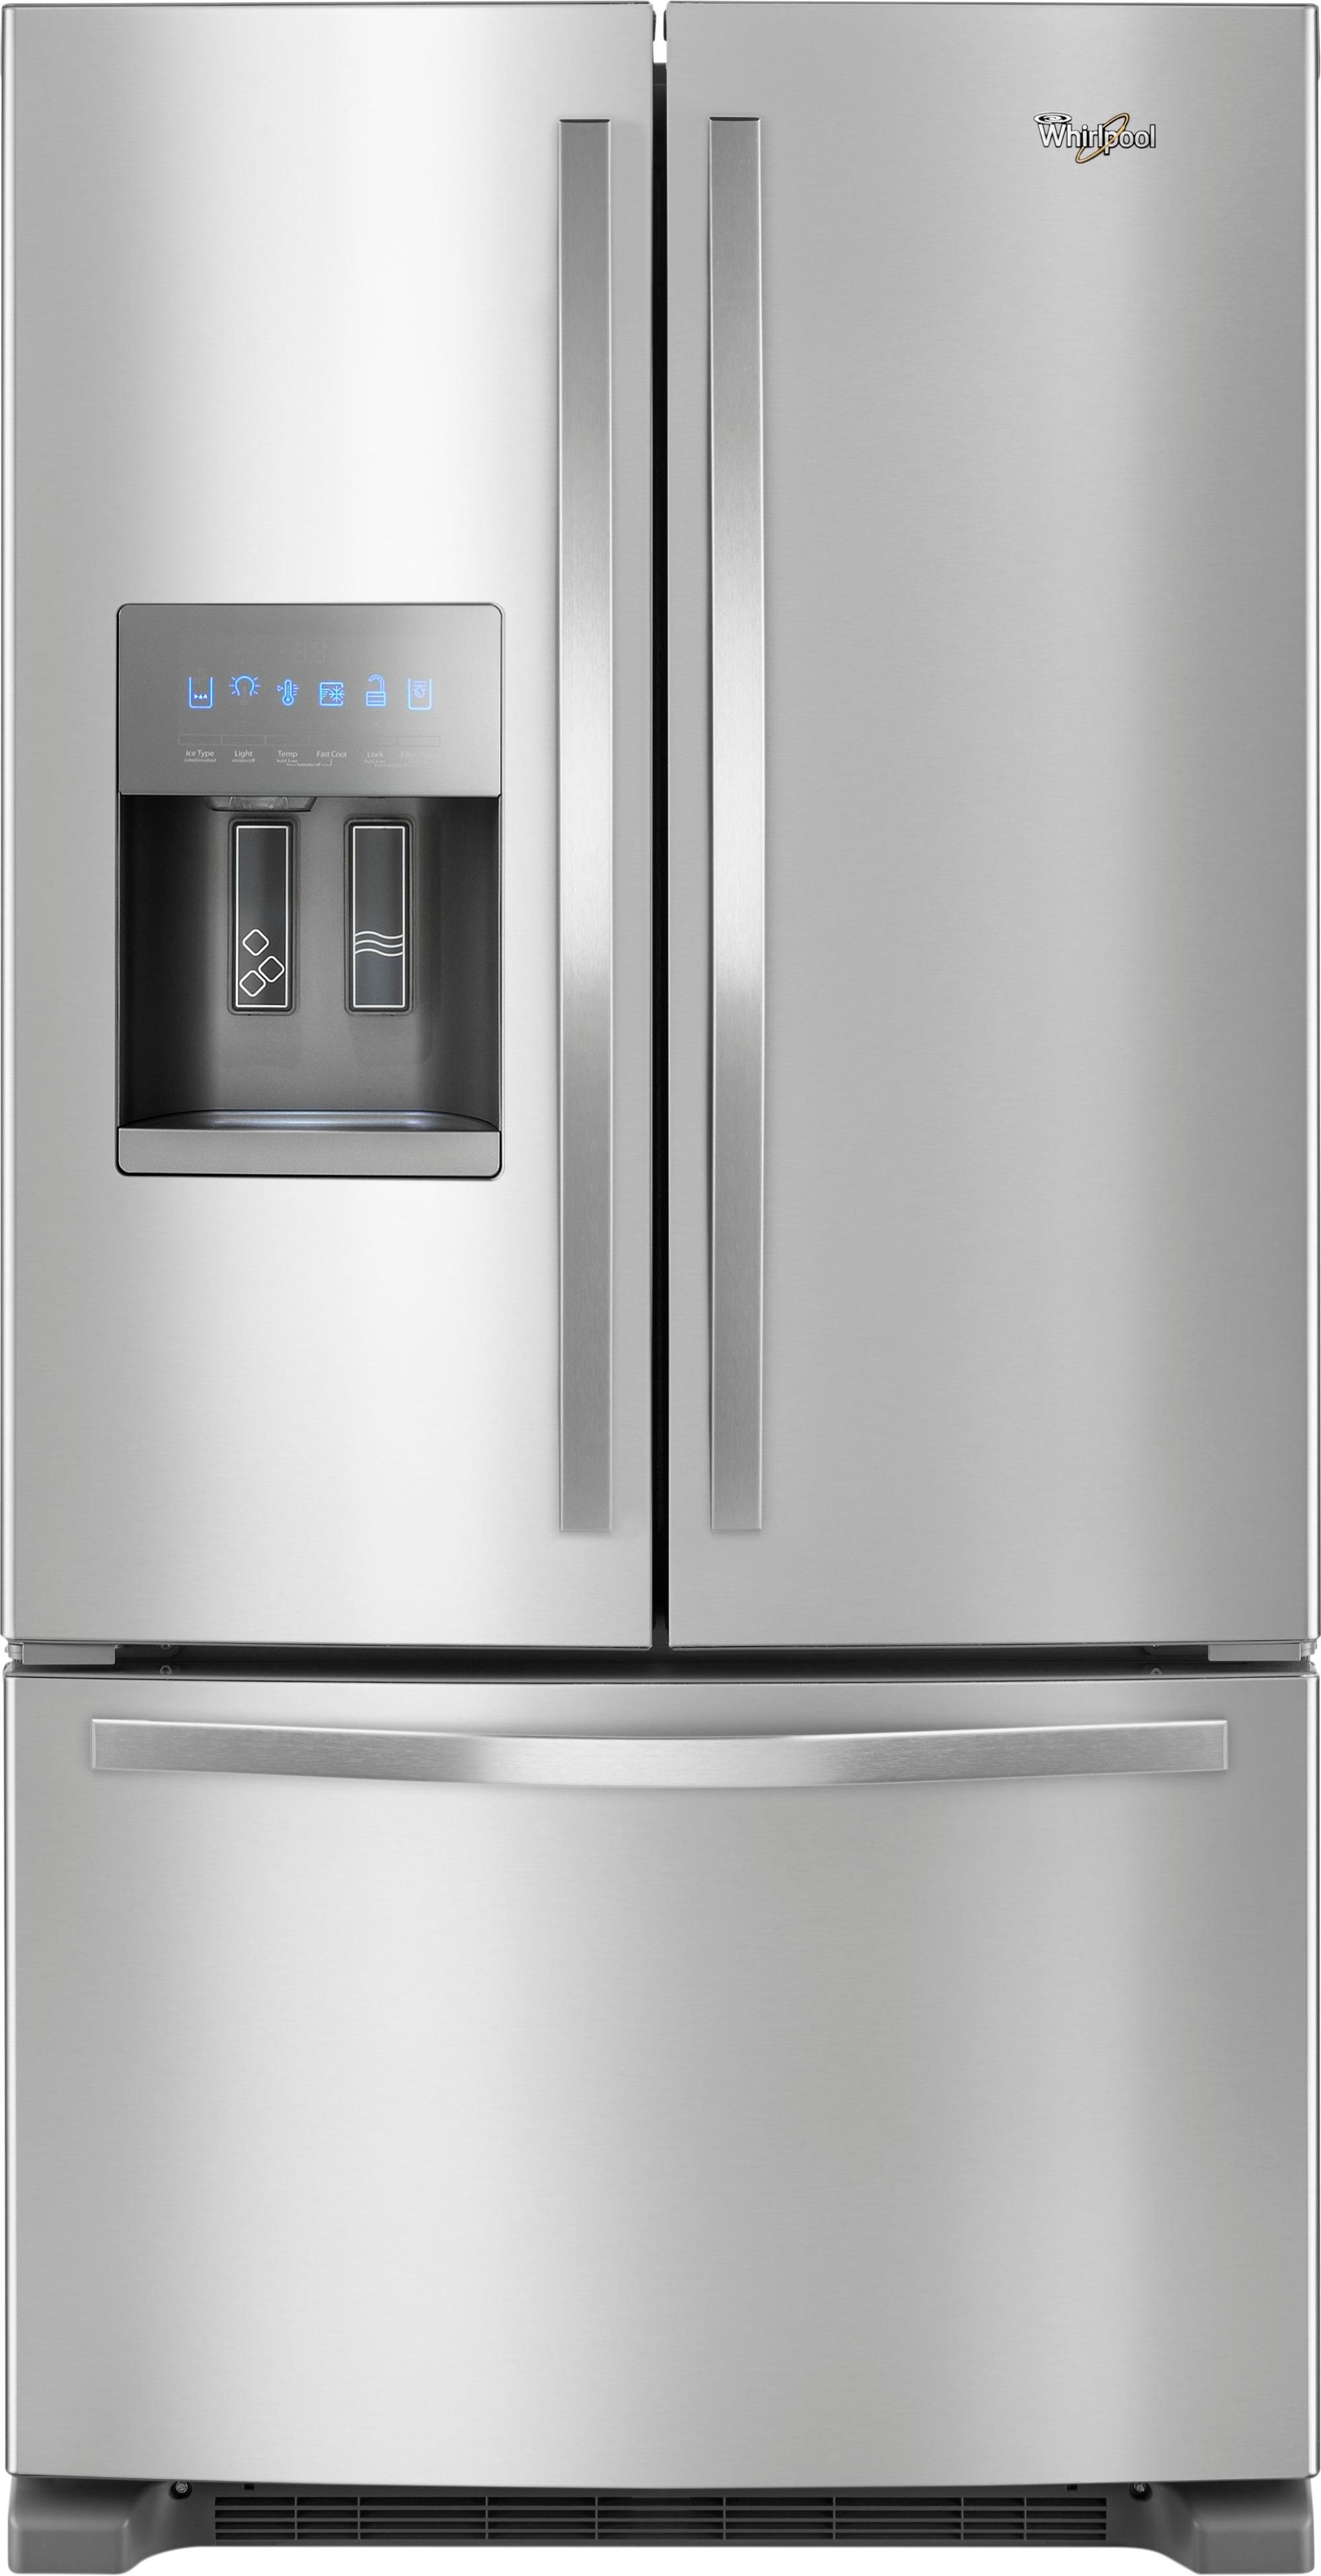 hight resolution of ft french door refrigerator stainless steel front zoom